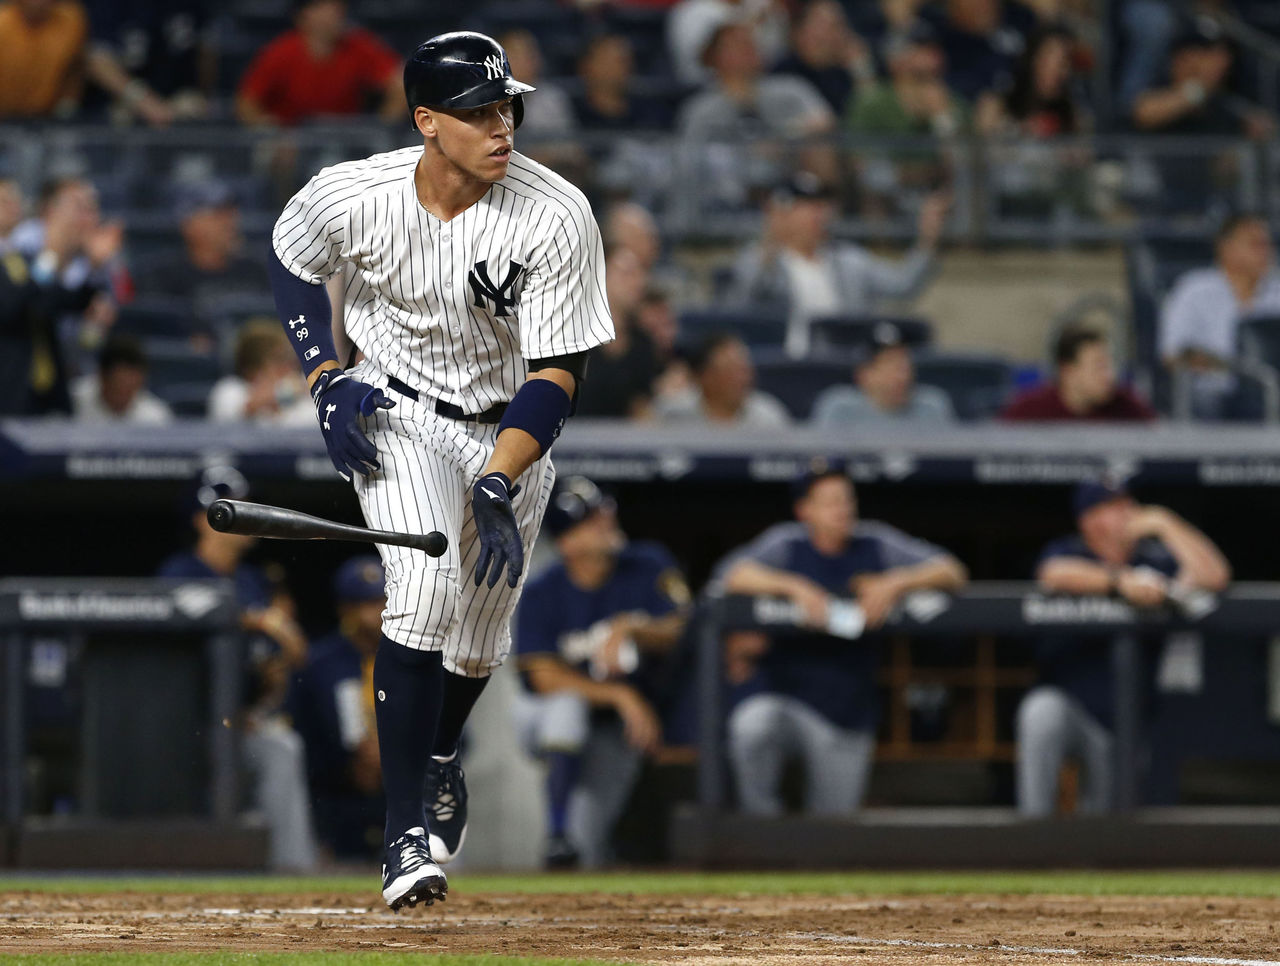 Cropped 2017 07 08t021303z 455139812 nocid rtrmadp 3 mlb milwaukee brewers at new york yankees